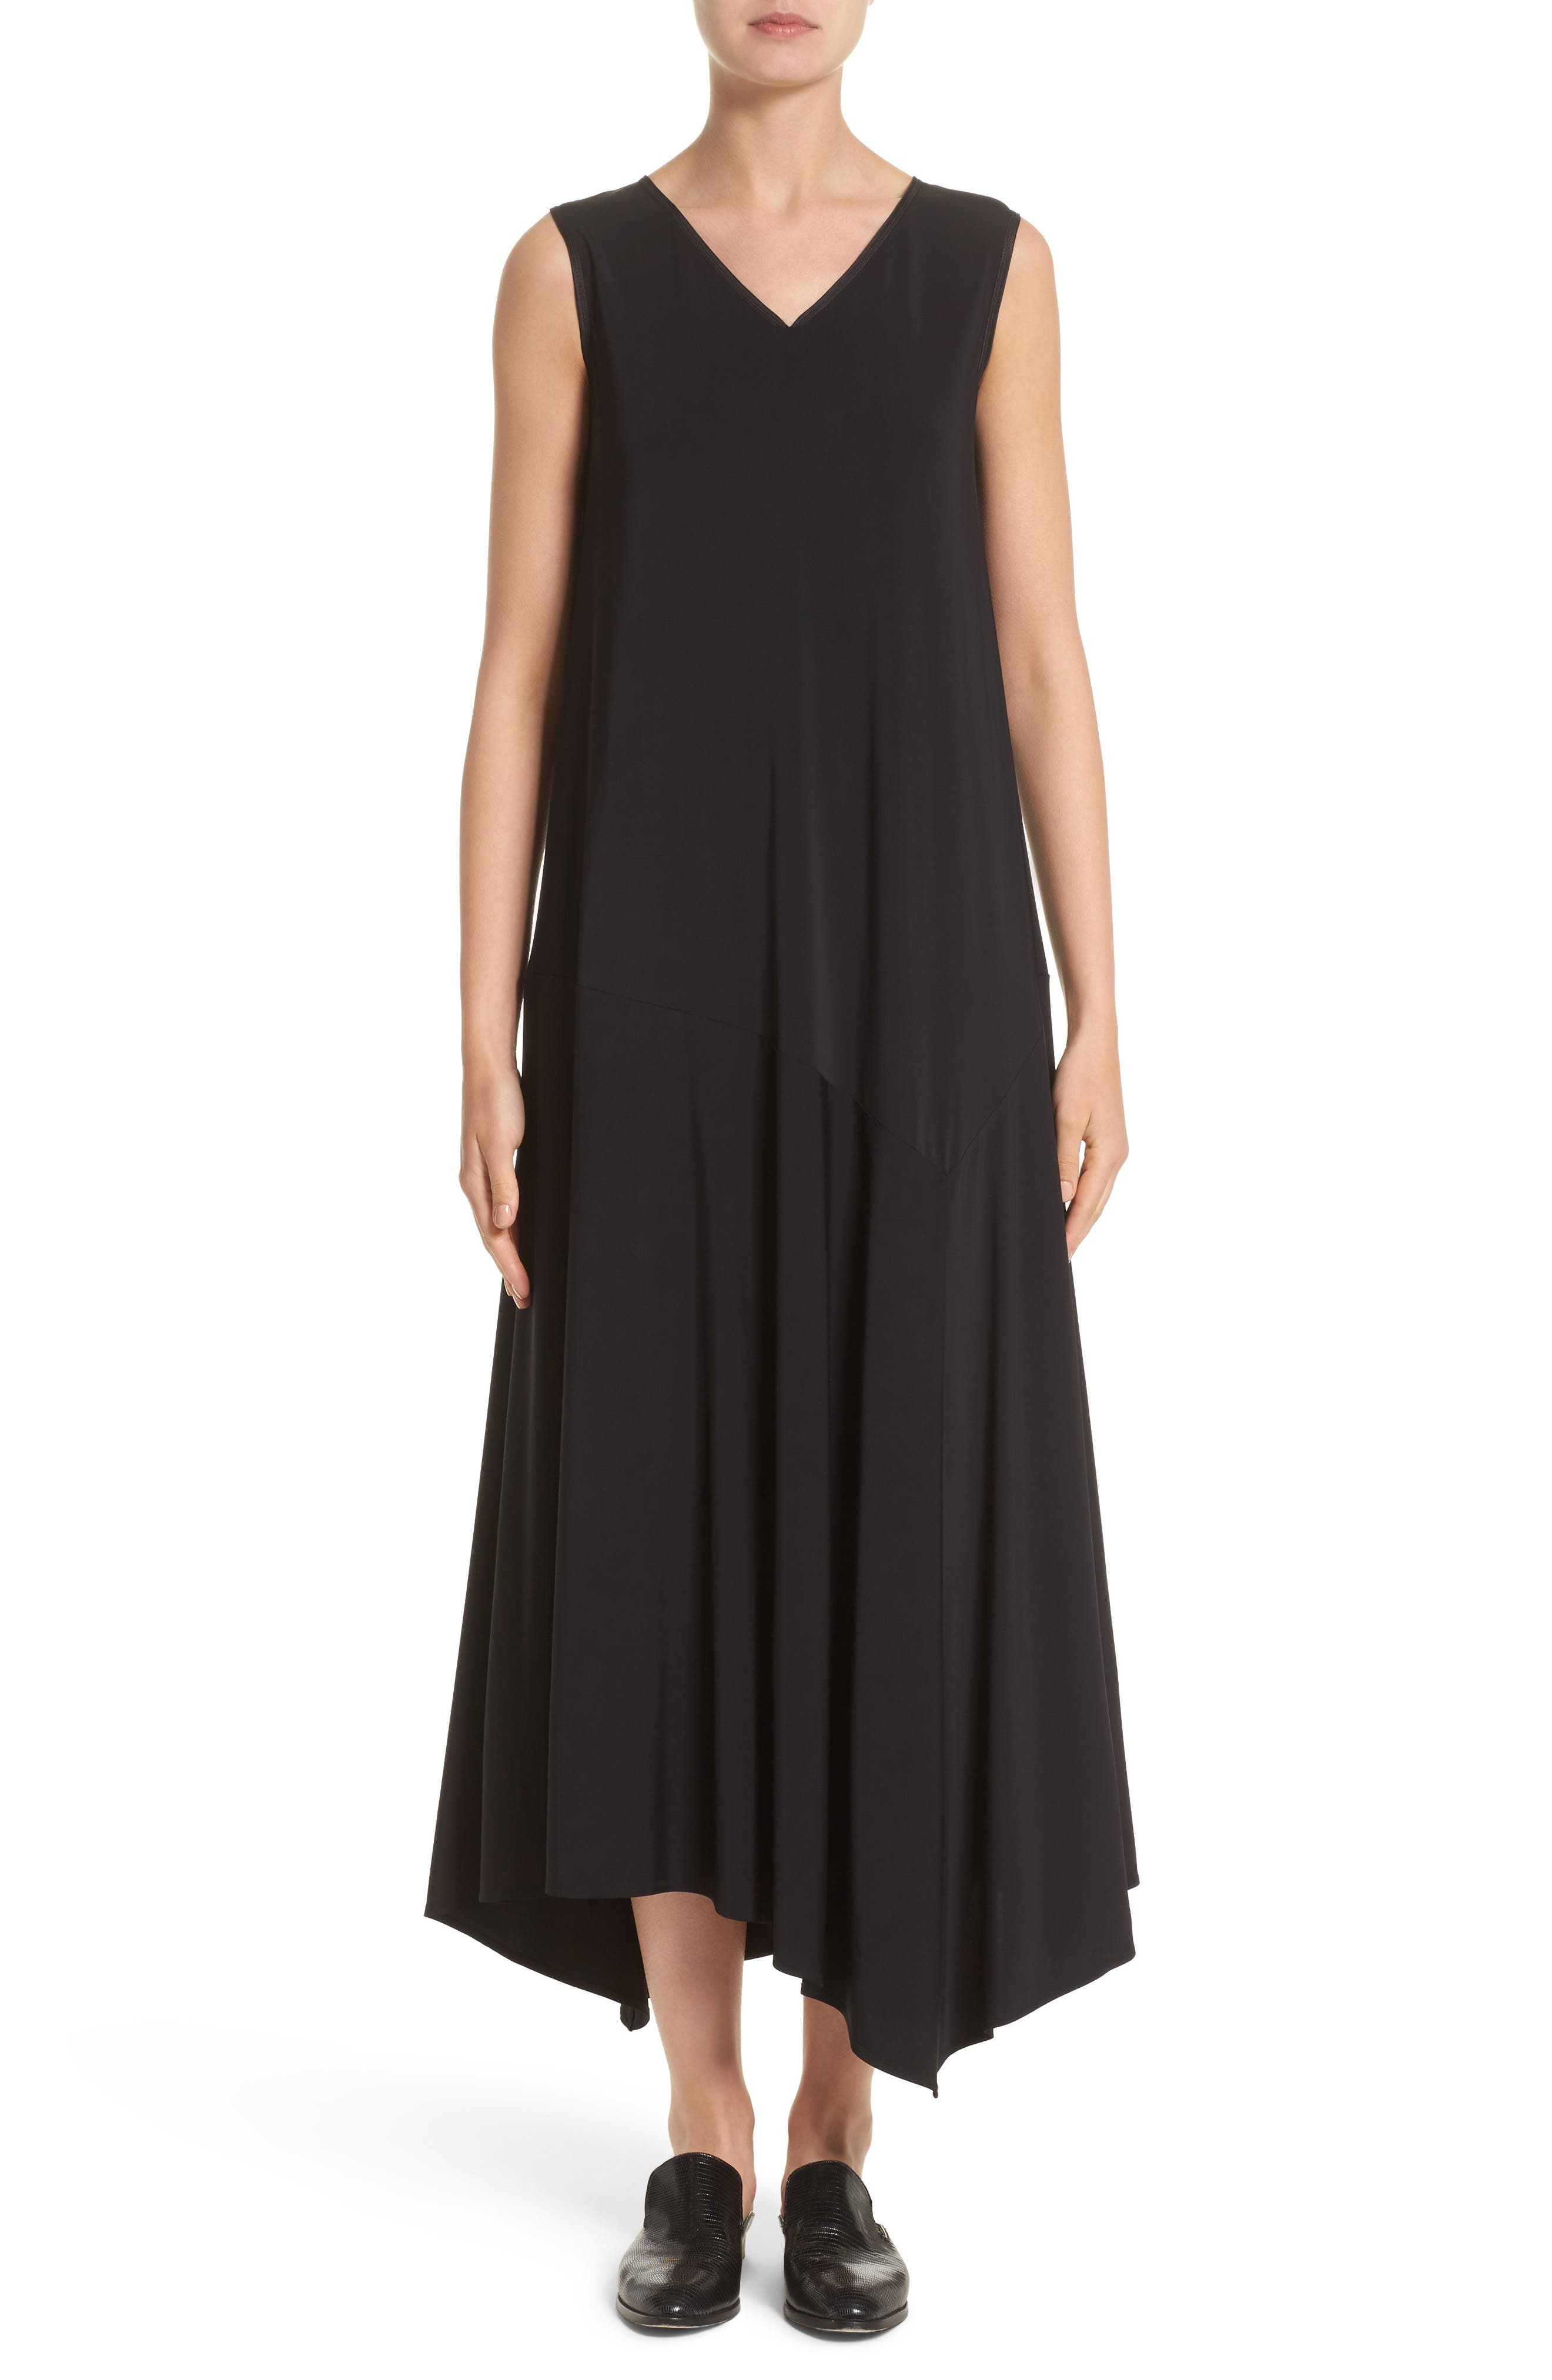 Cultivated Crepe Jersey Asymmetrical Dress,                             Main thumbnail 1, color,                             001